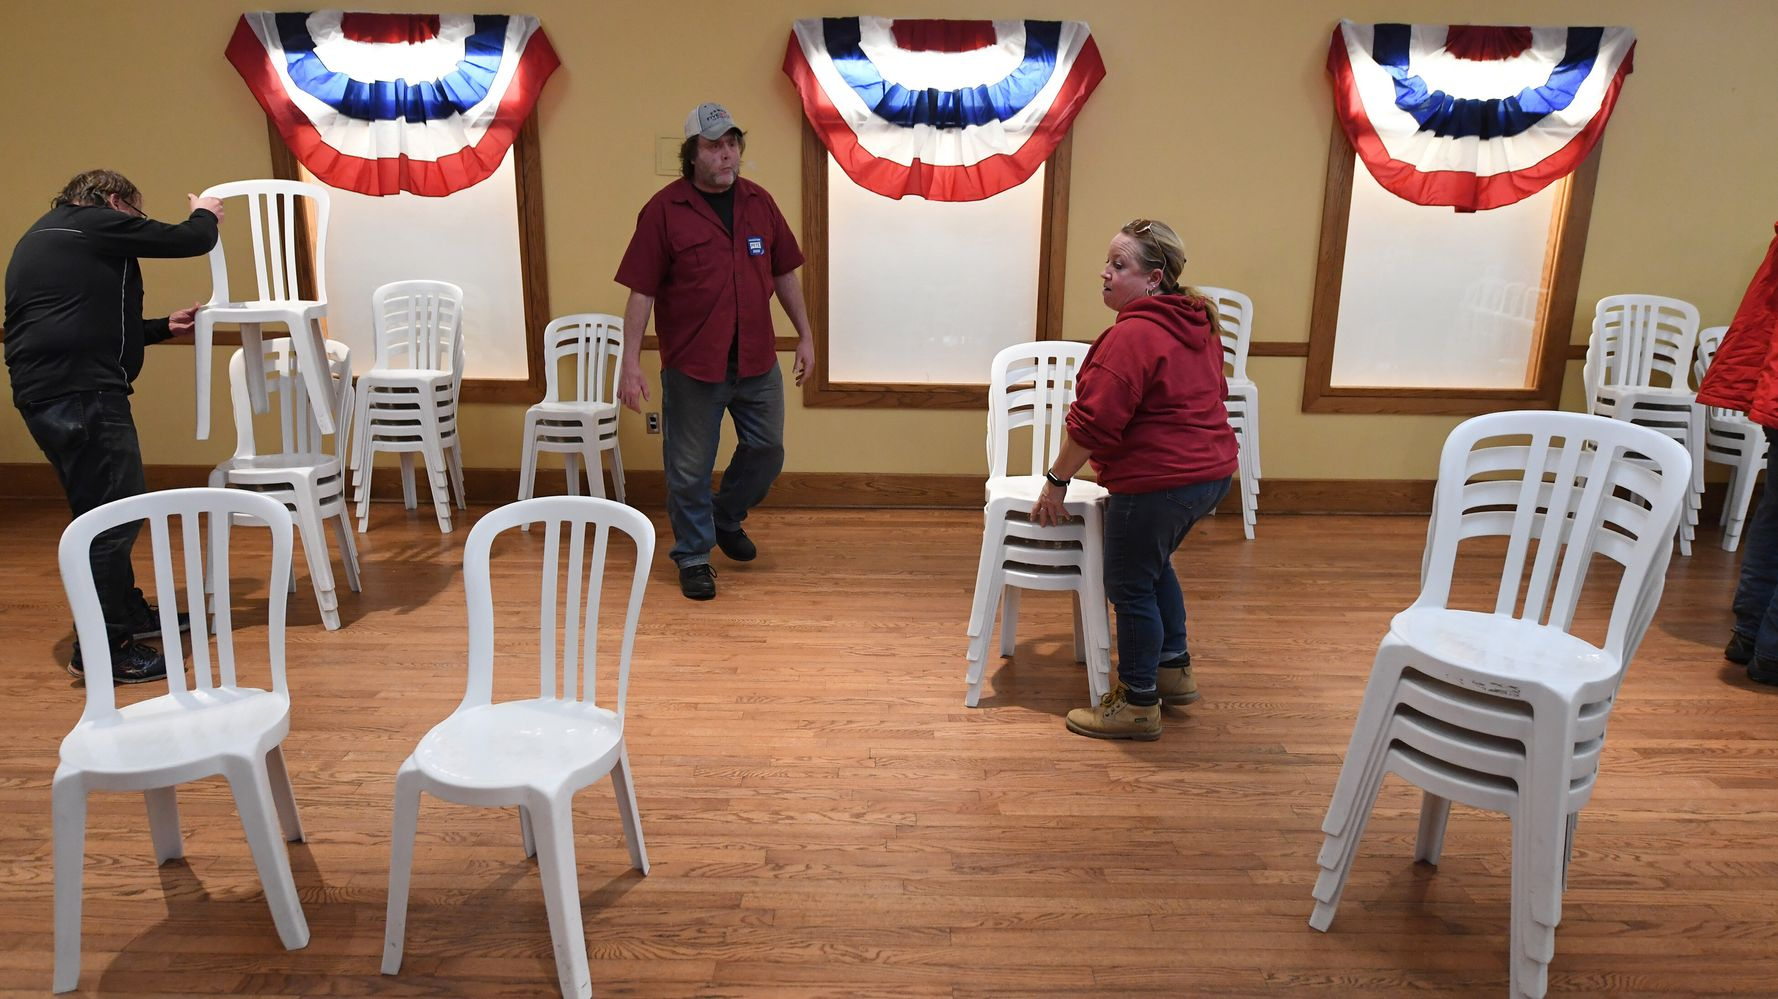 Polities Highly Anticipated Iowa Caucuses Poll Shelved Over Possible Errors